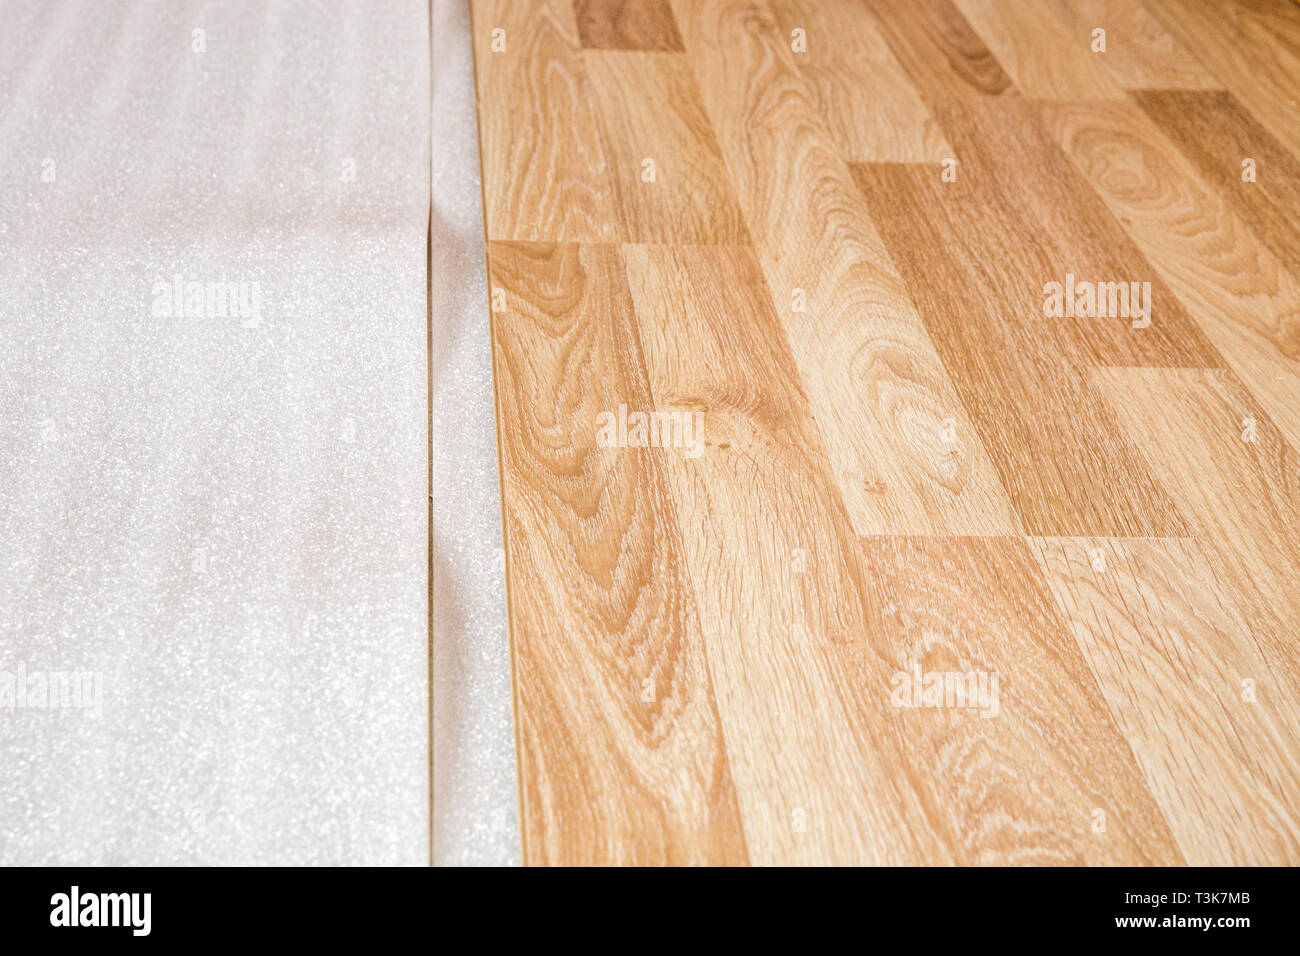 Laminate, the structure of wood, wooden boards and insulating substrate - Stock Image